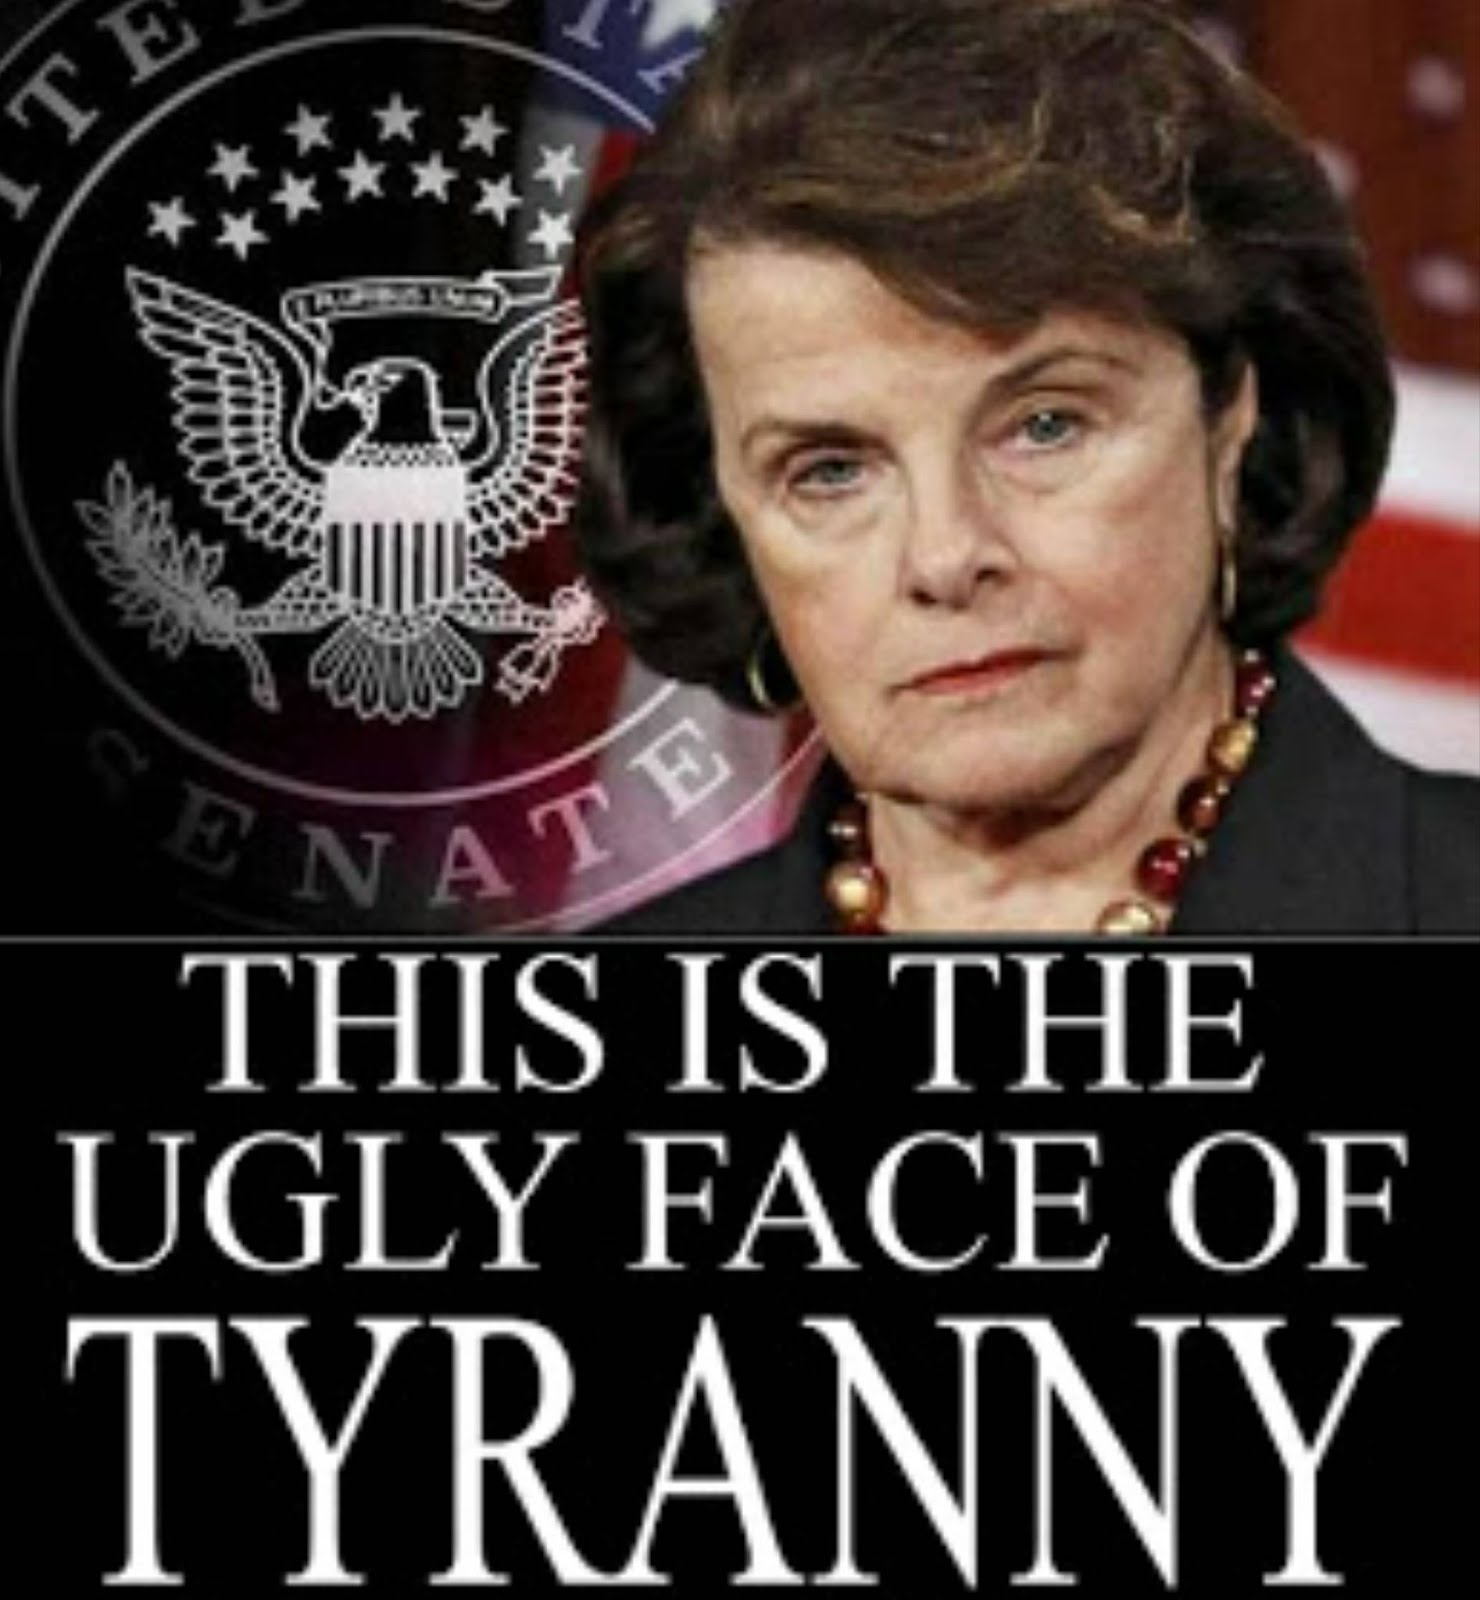 The_Ugly_Face_of_Tyranny-769234-1-784392